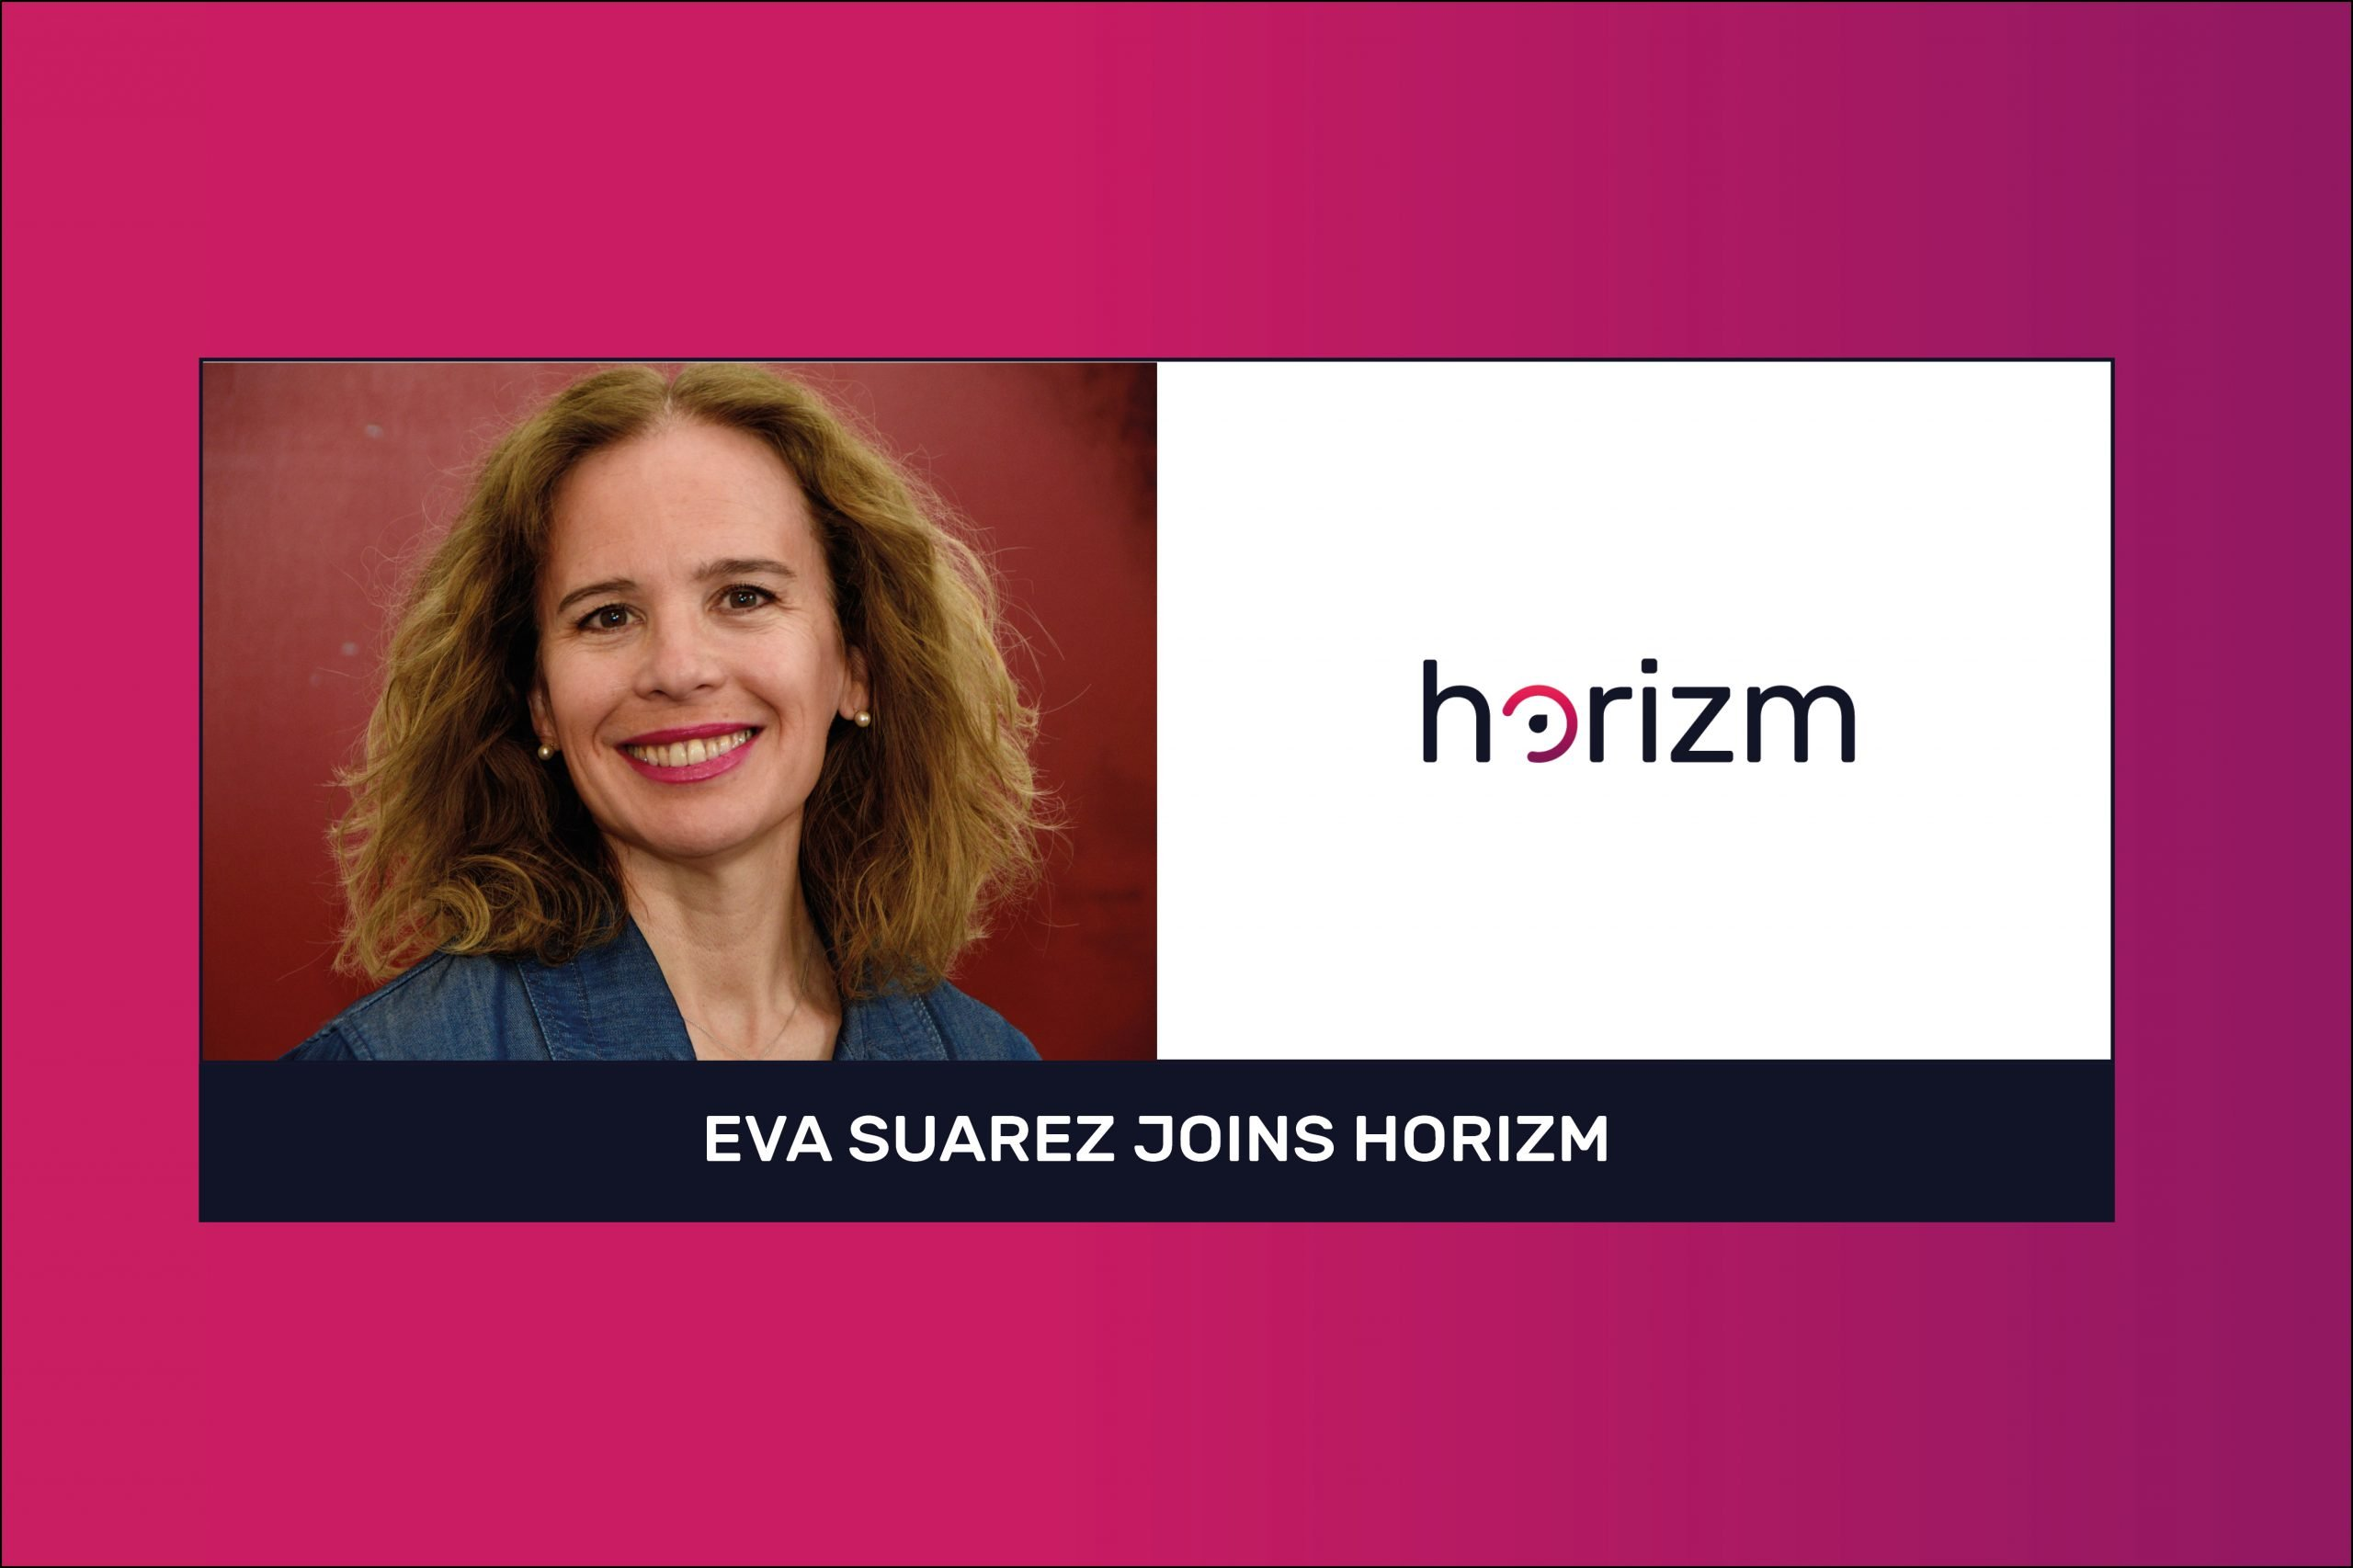 Former Juventus and FC Barcelona Department Head joins Horizm